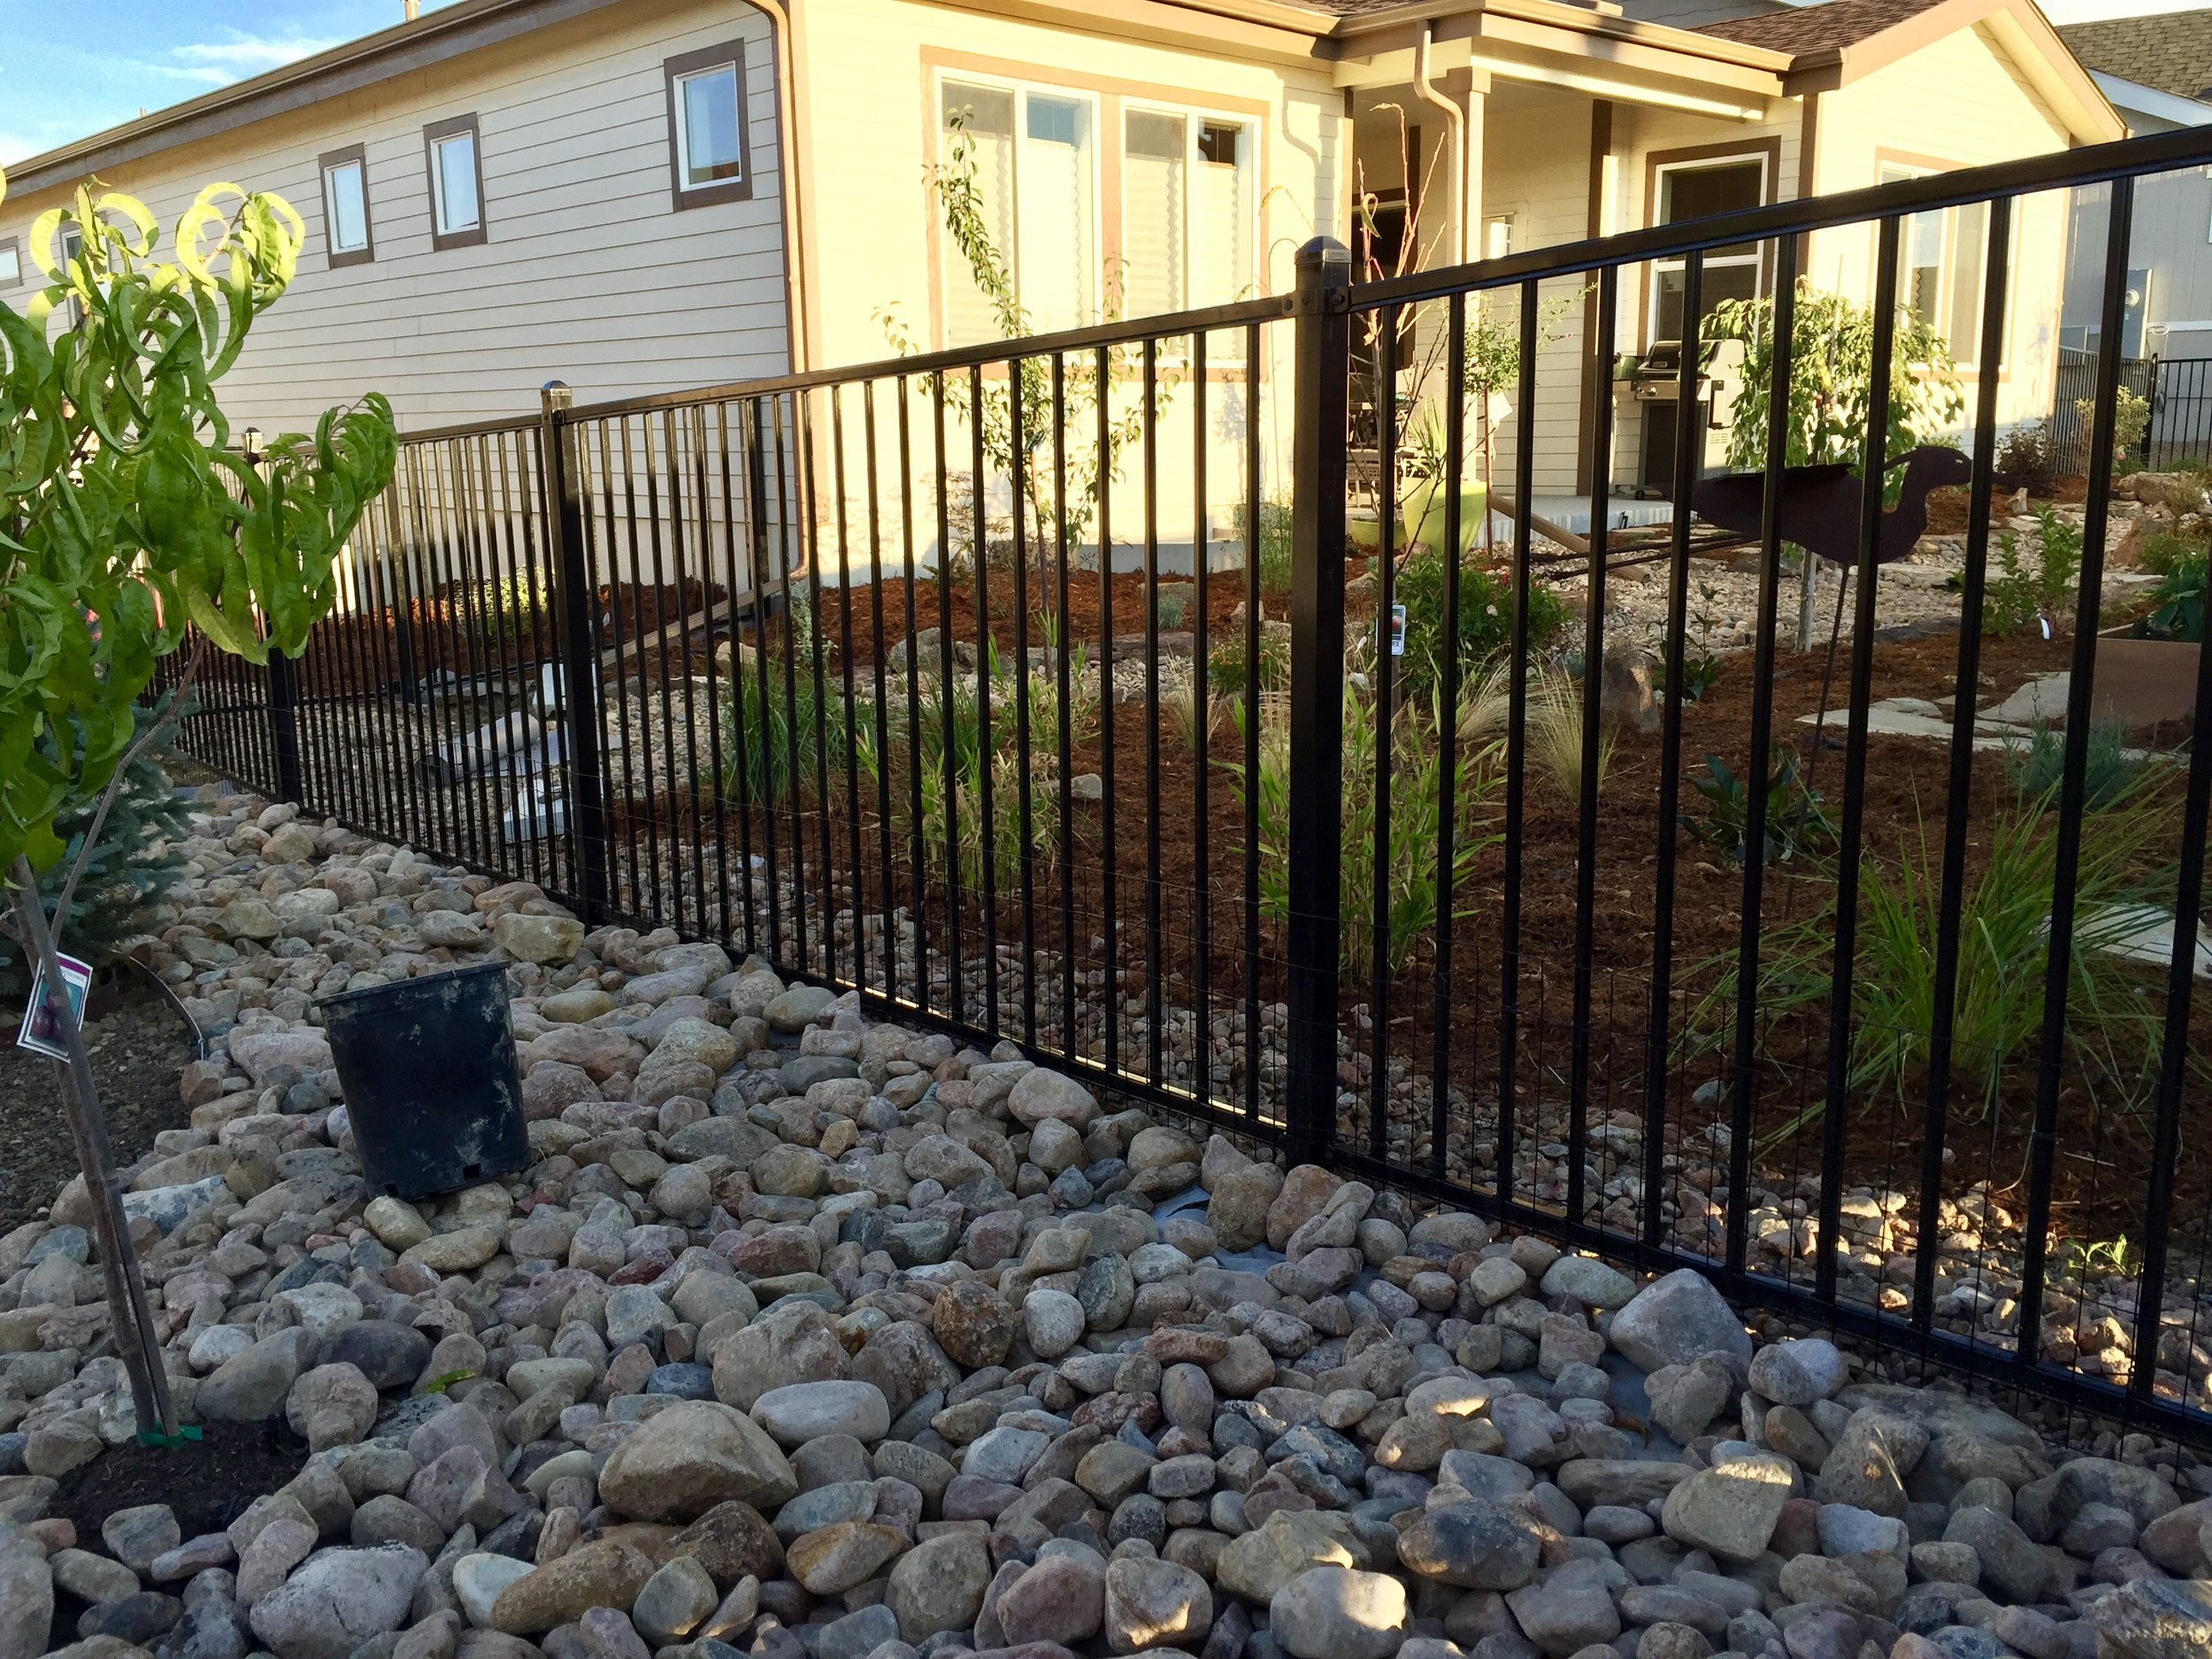 Metal Fence System - Price🌲🌲🌲Durability🌲🌲🌲🌲Maintanence Costs🌲Longevity🌲🌲🌲🌲🌲